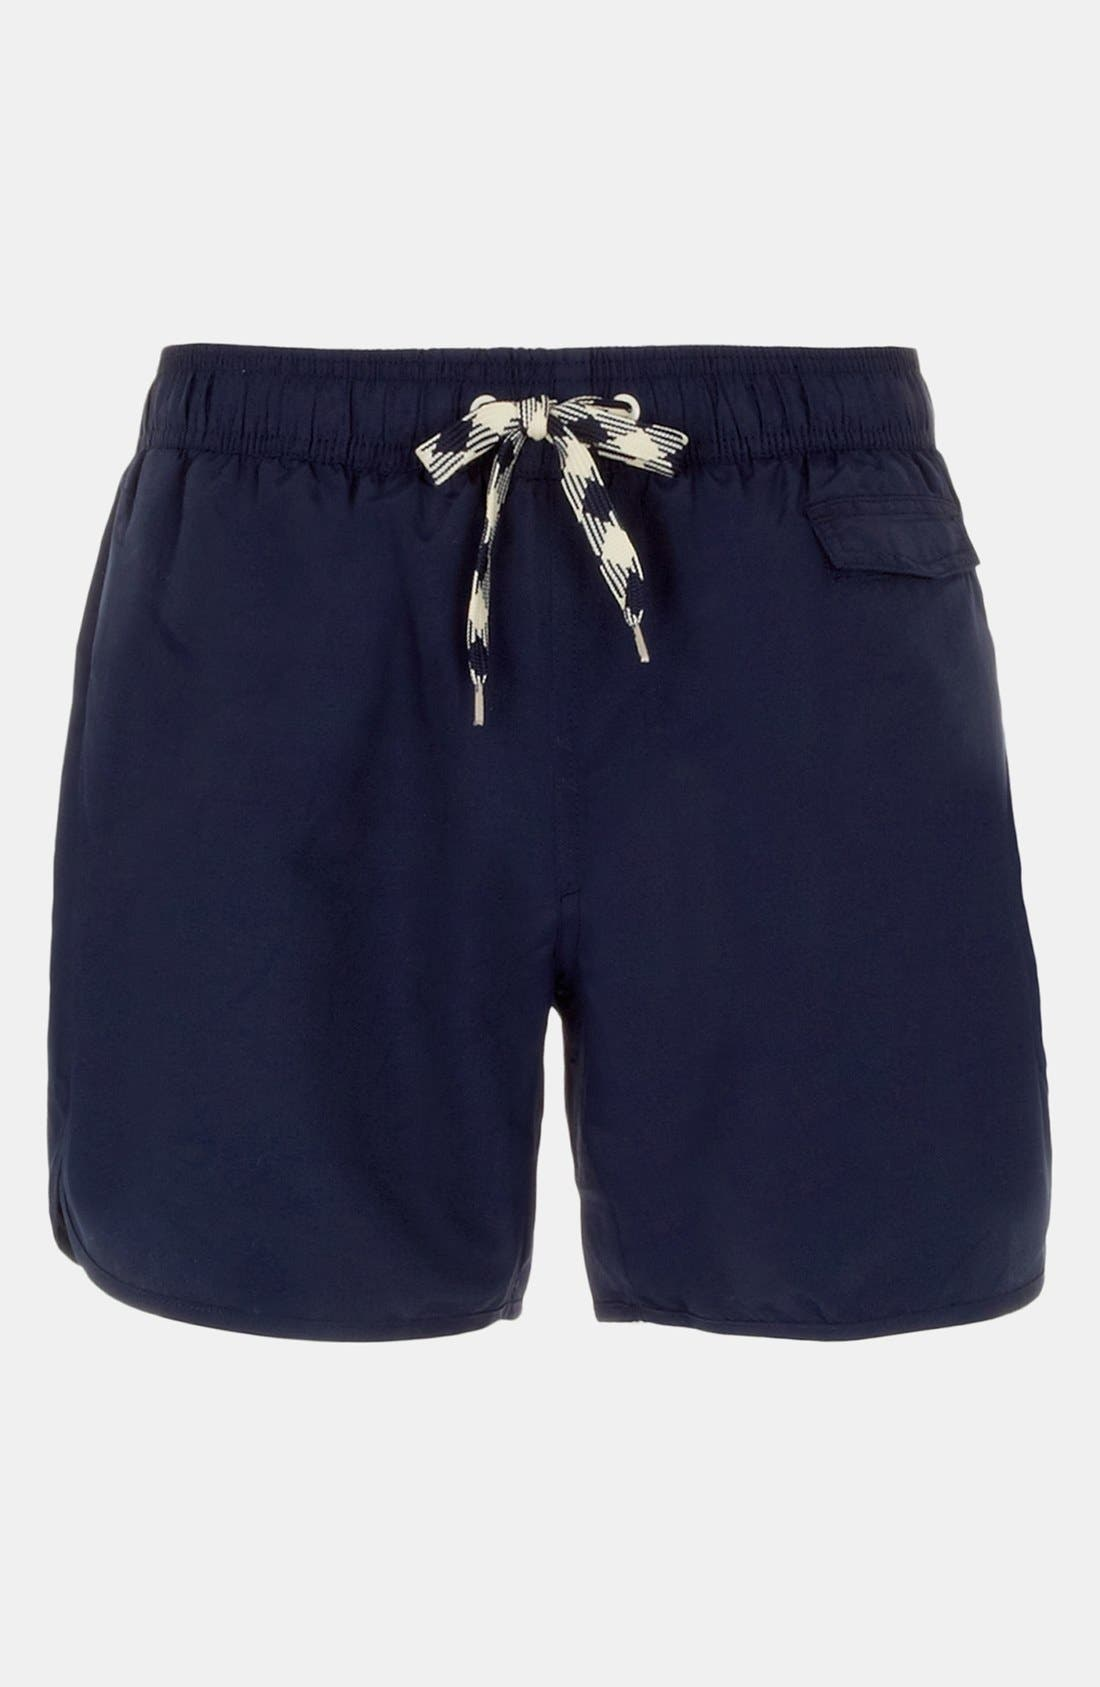 Alternate Image 1 Selected - Topman 'Cornwall' Swim Trunks